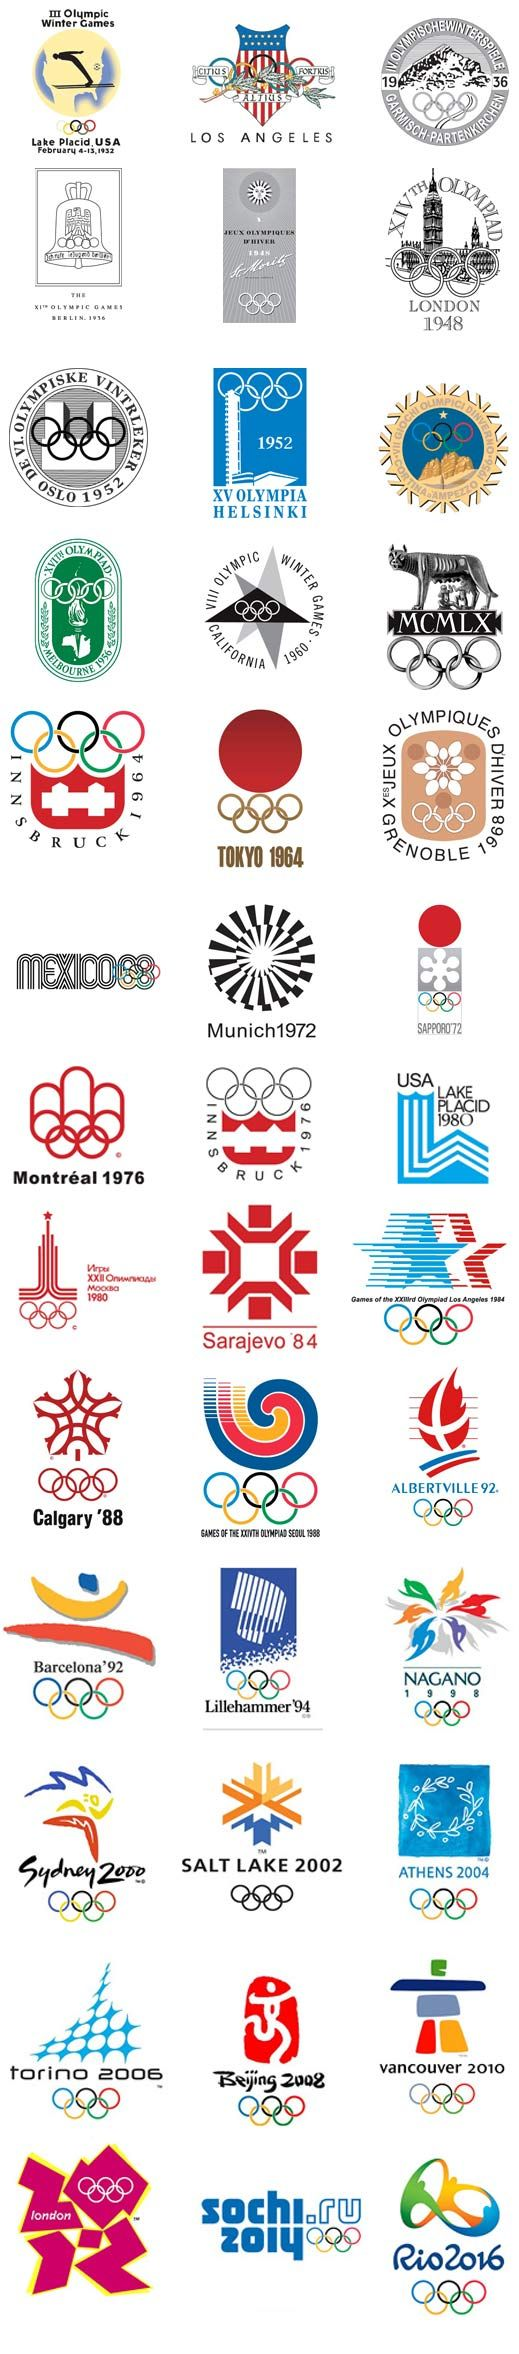 Olympic Logos from 1932 to Rio 2016. Few real winners here, but Rome's 1960 Romulus & Remus is strong, and Tokyo 64 and Sapporo 76 both work. Do more than the 5 people who designed and approved it actually like London 2012? No. And our best design work just doesn't come out for the Olympics--too many committee approvals.